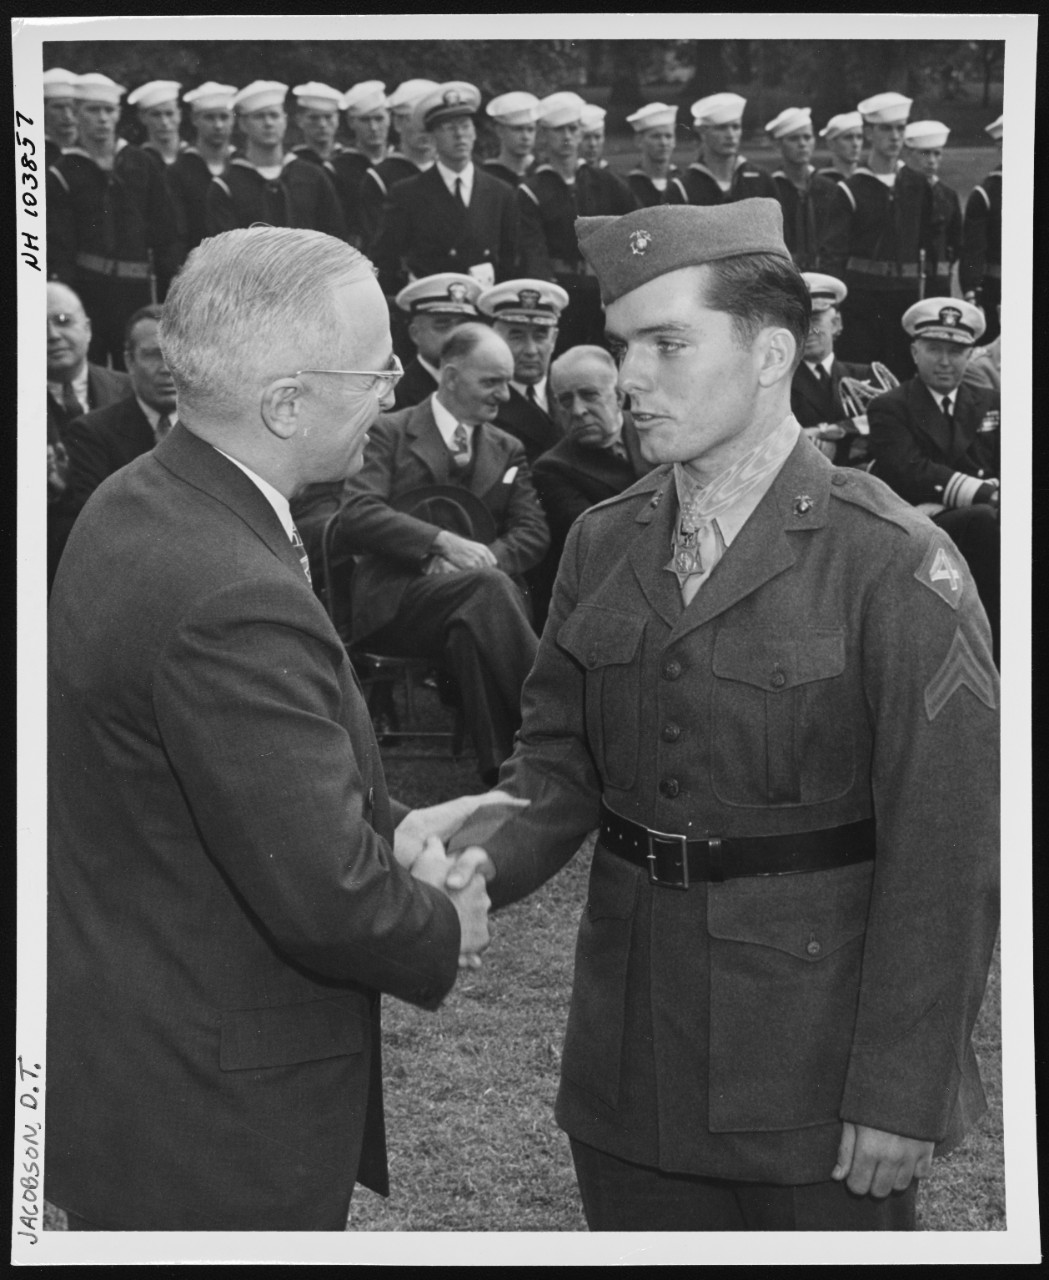 Photo #: NH 103857  Corporal Douglas T. Jacobson, USMC